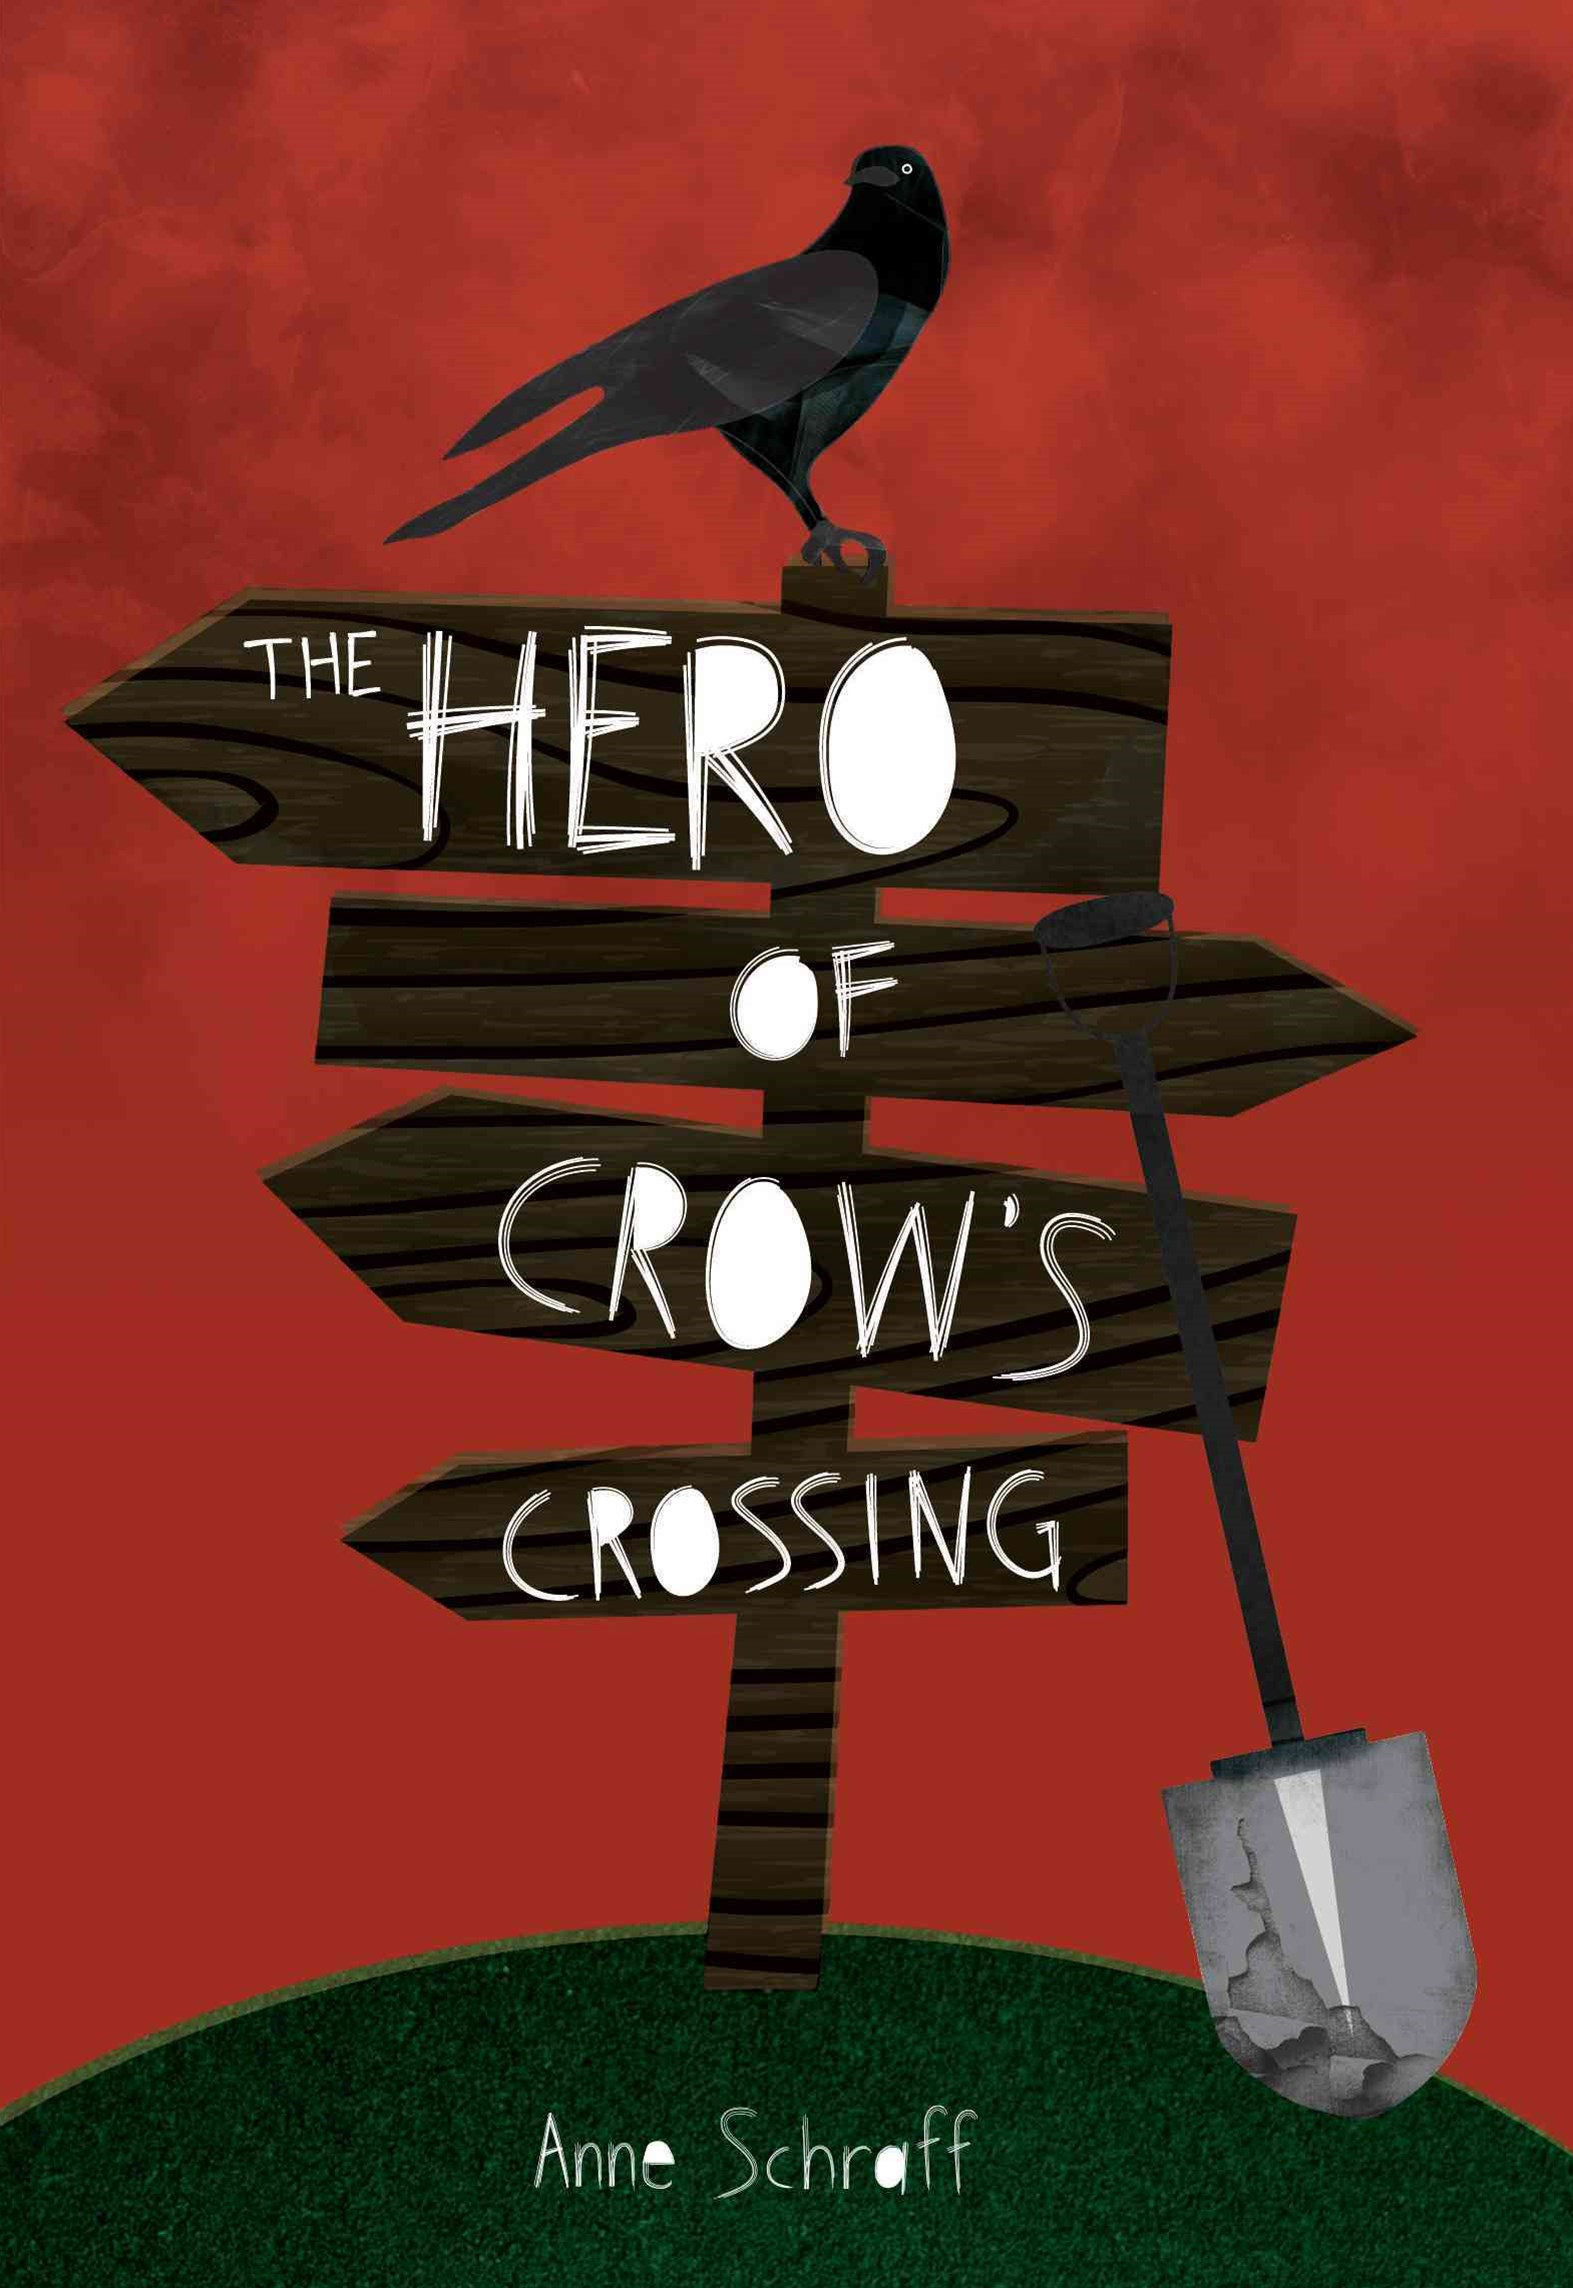 The Hero at Crow's Crossing